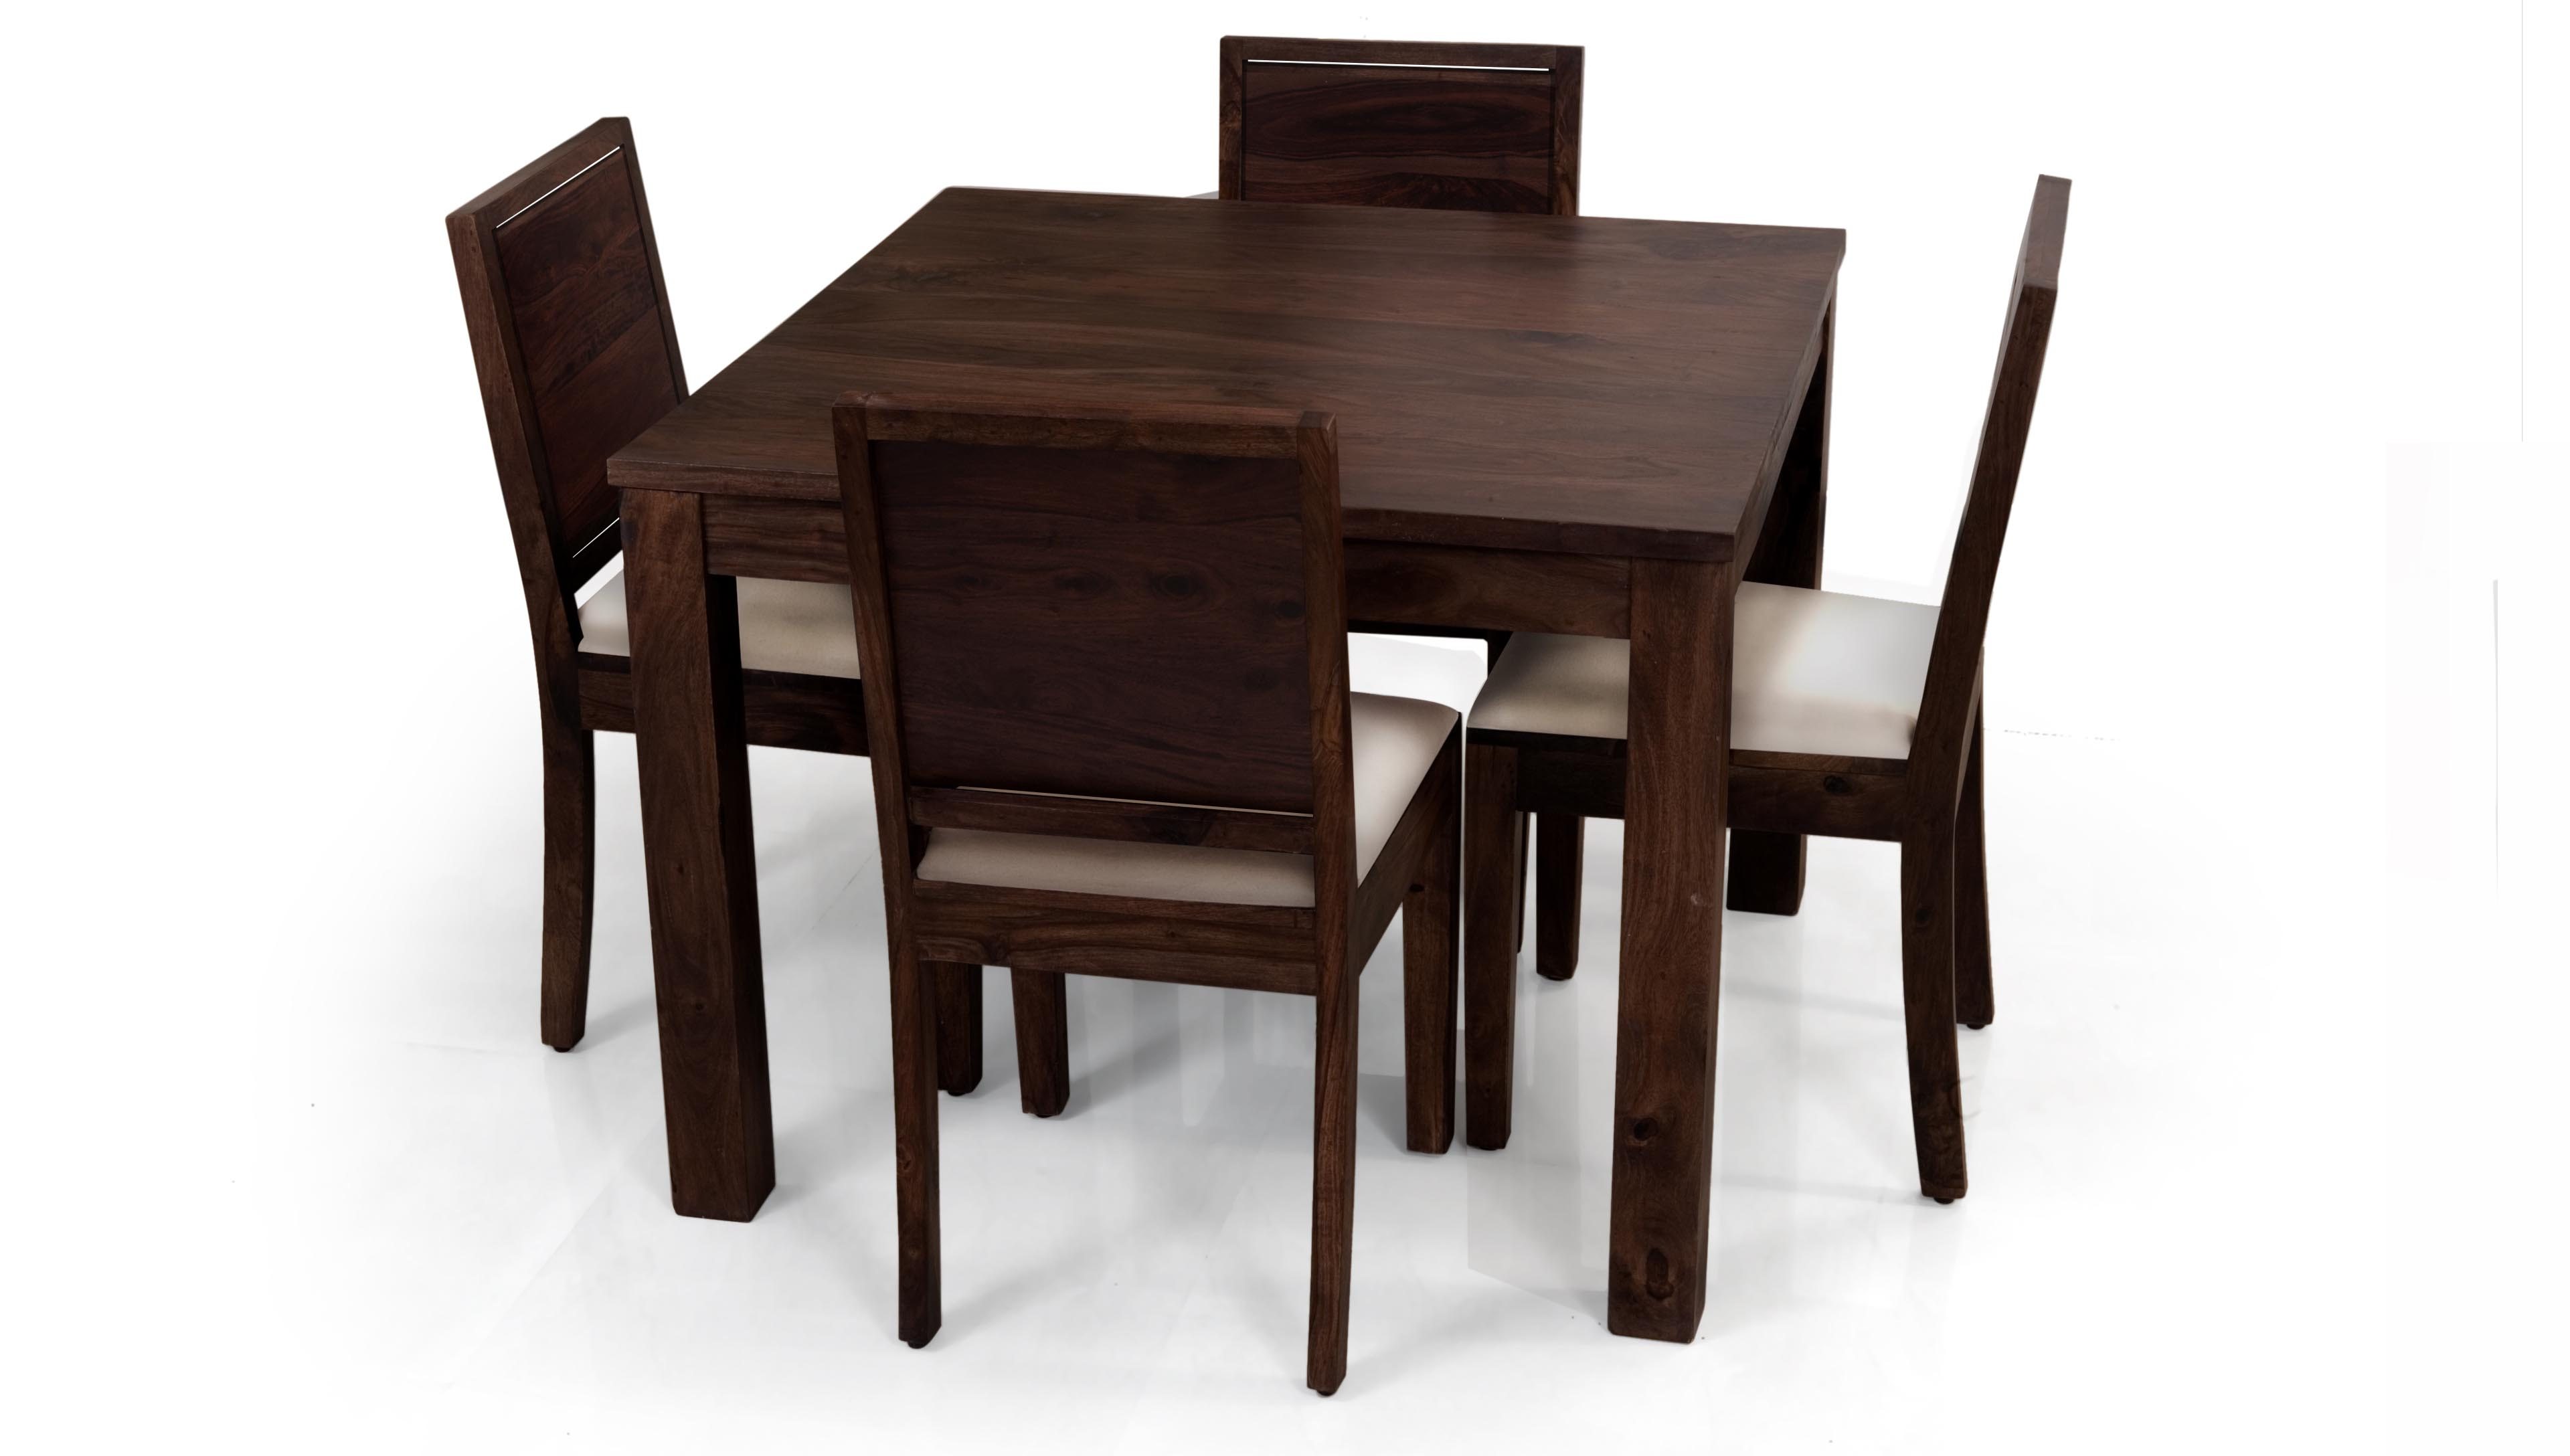 Square dining table for 4 homesfeed Wooden dining table and chairs